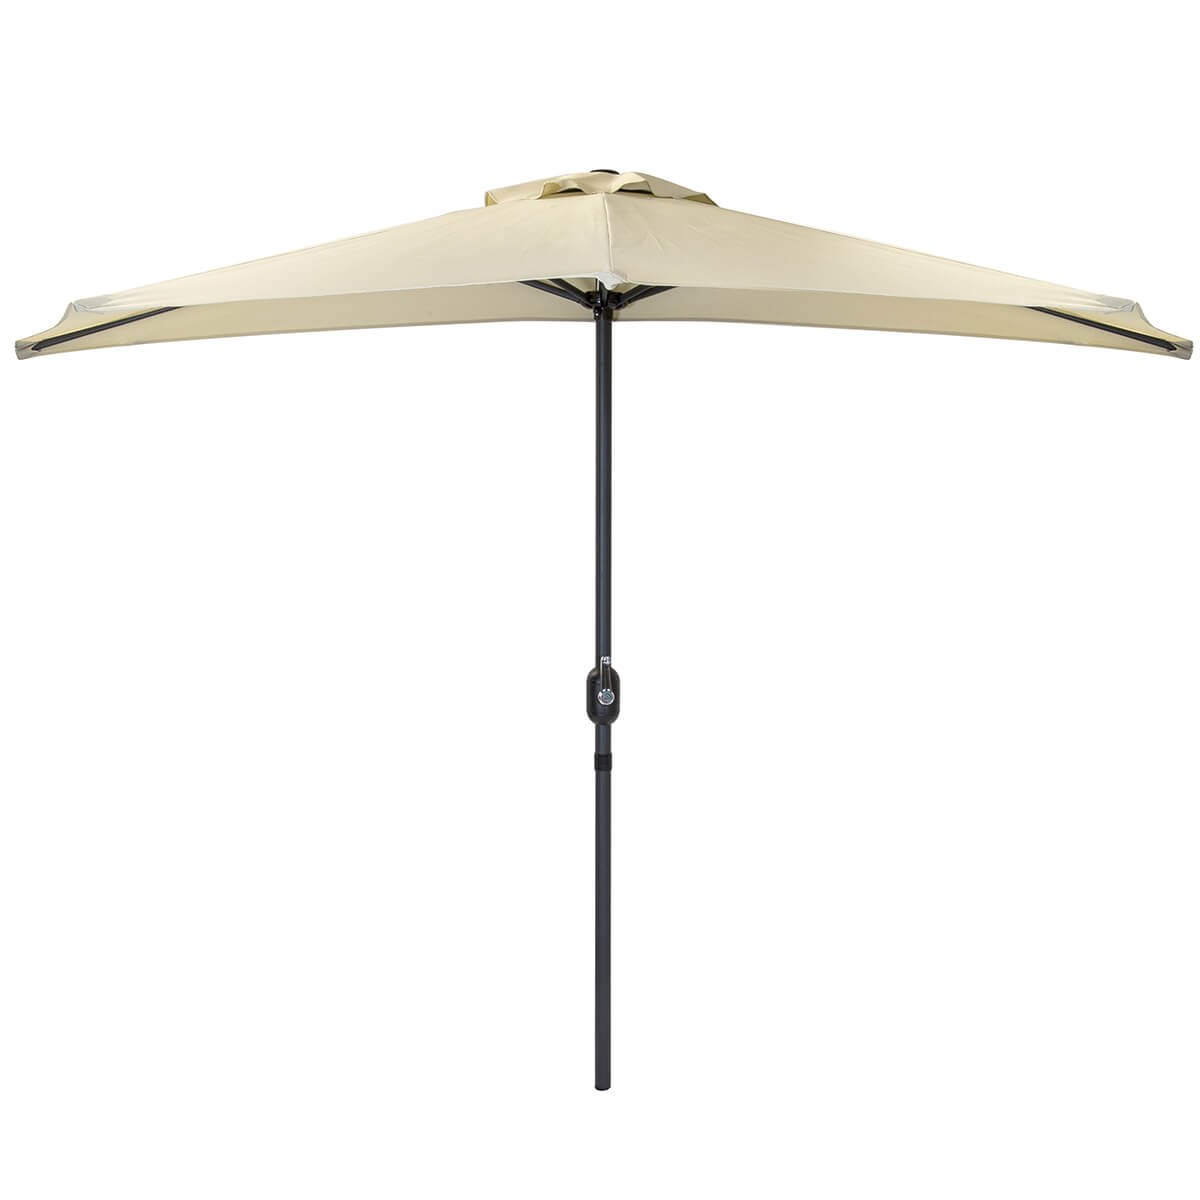 Balcony Umbrella Half Parasol for Against the Wall